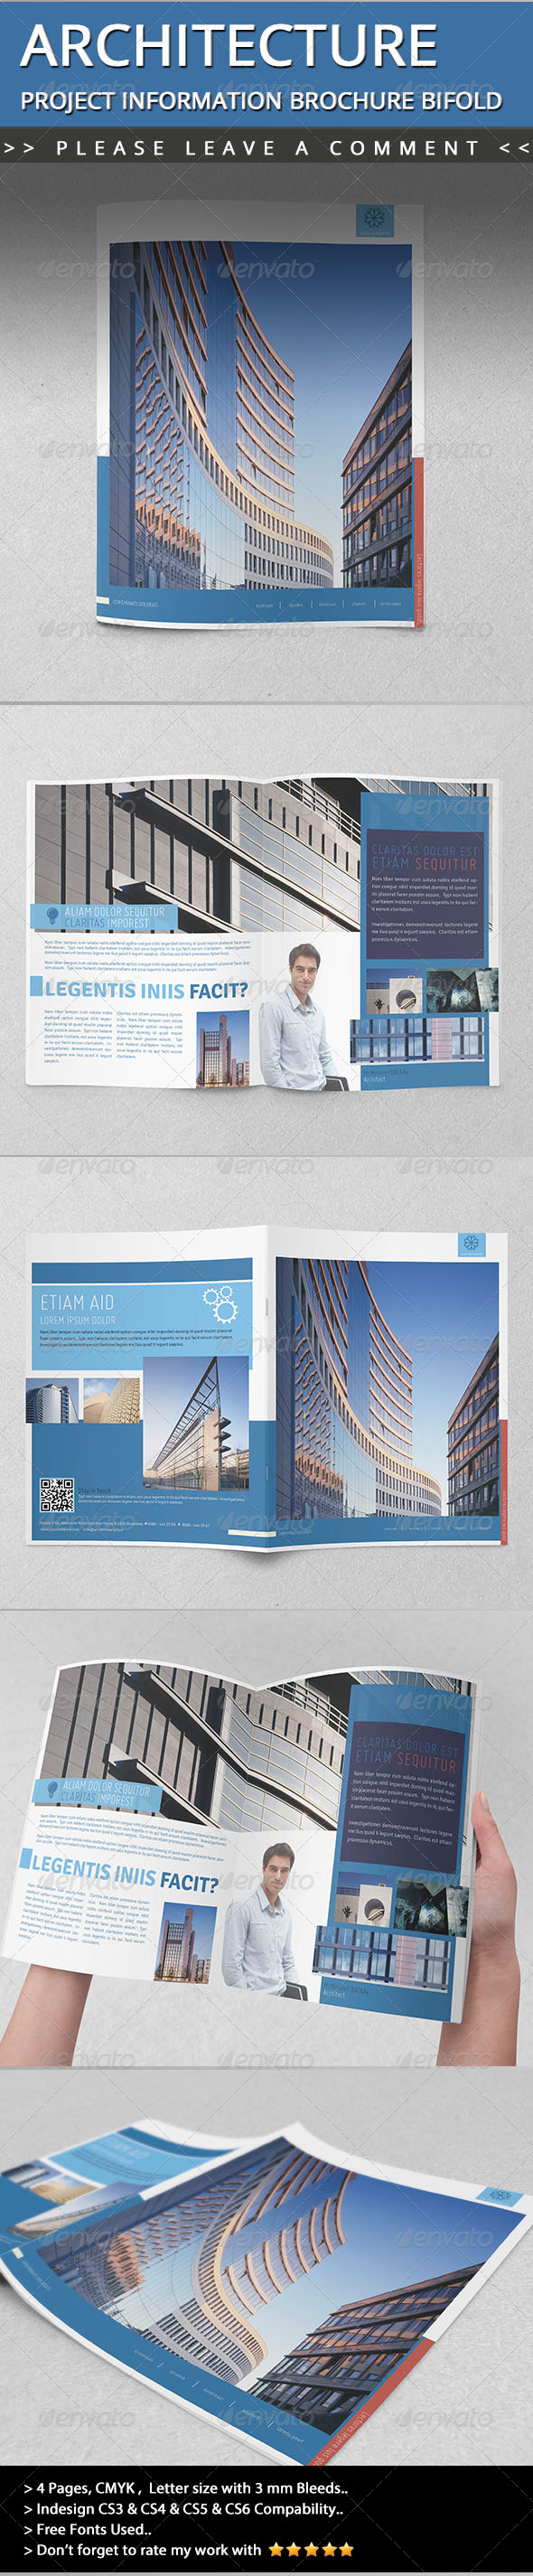 GraphicRiver Architecture Project Information Brochure Bifold 4959632